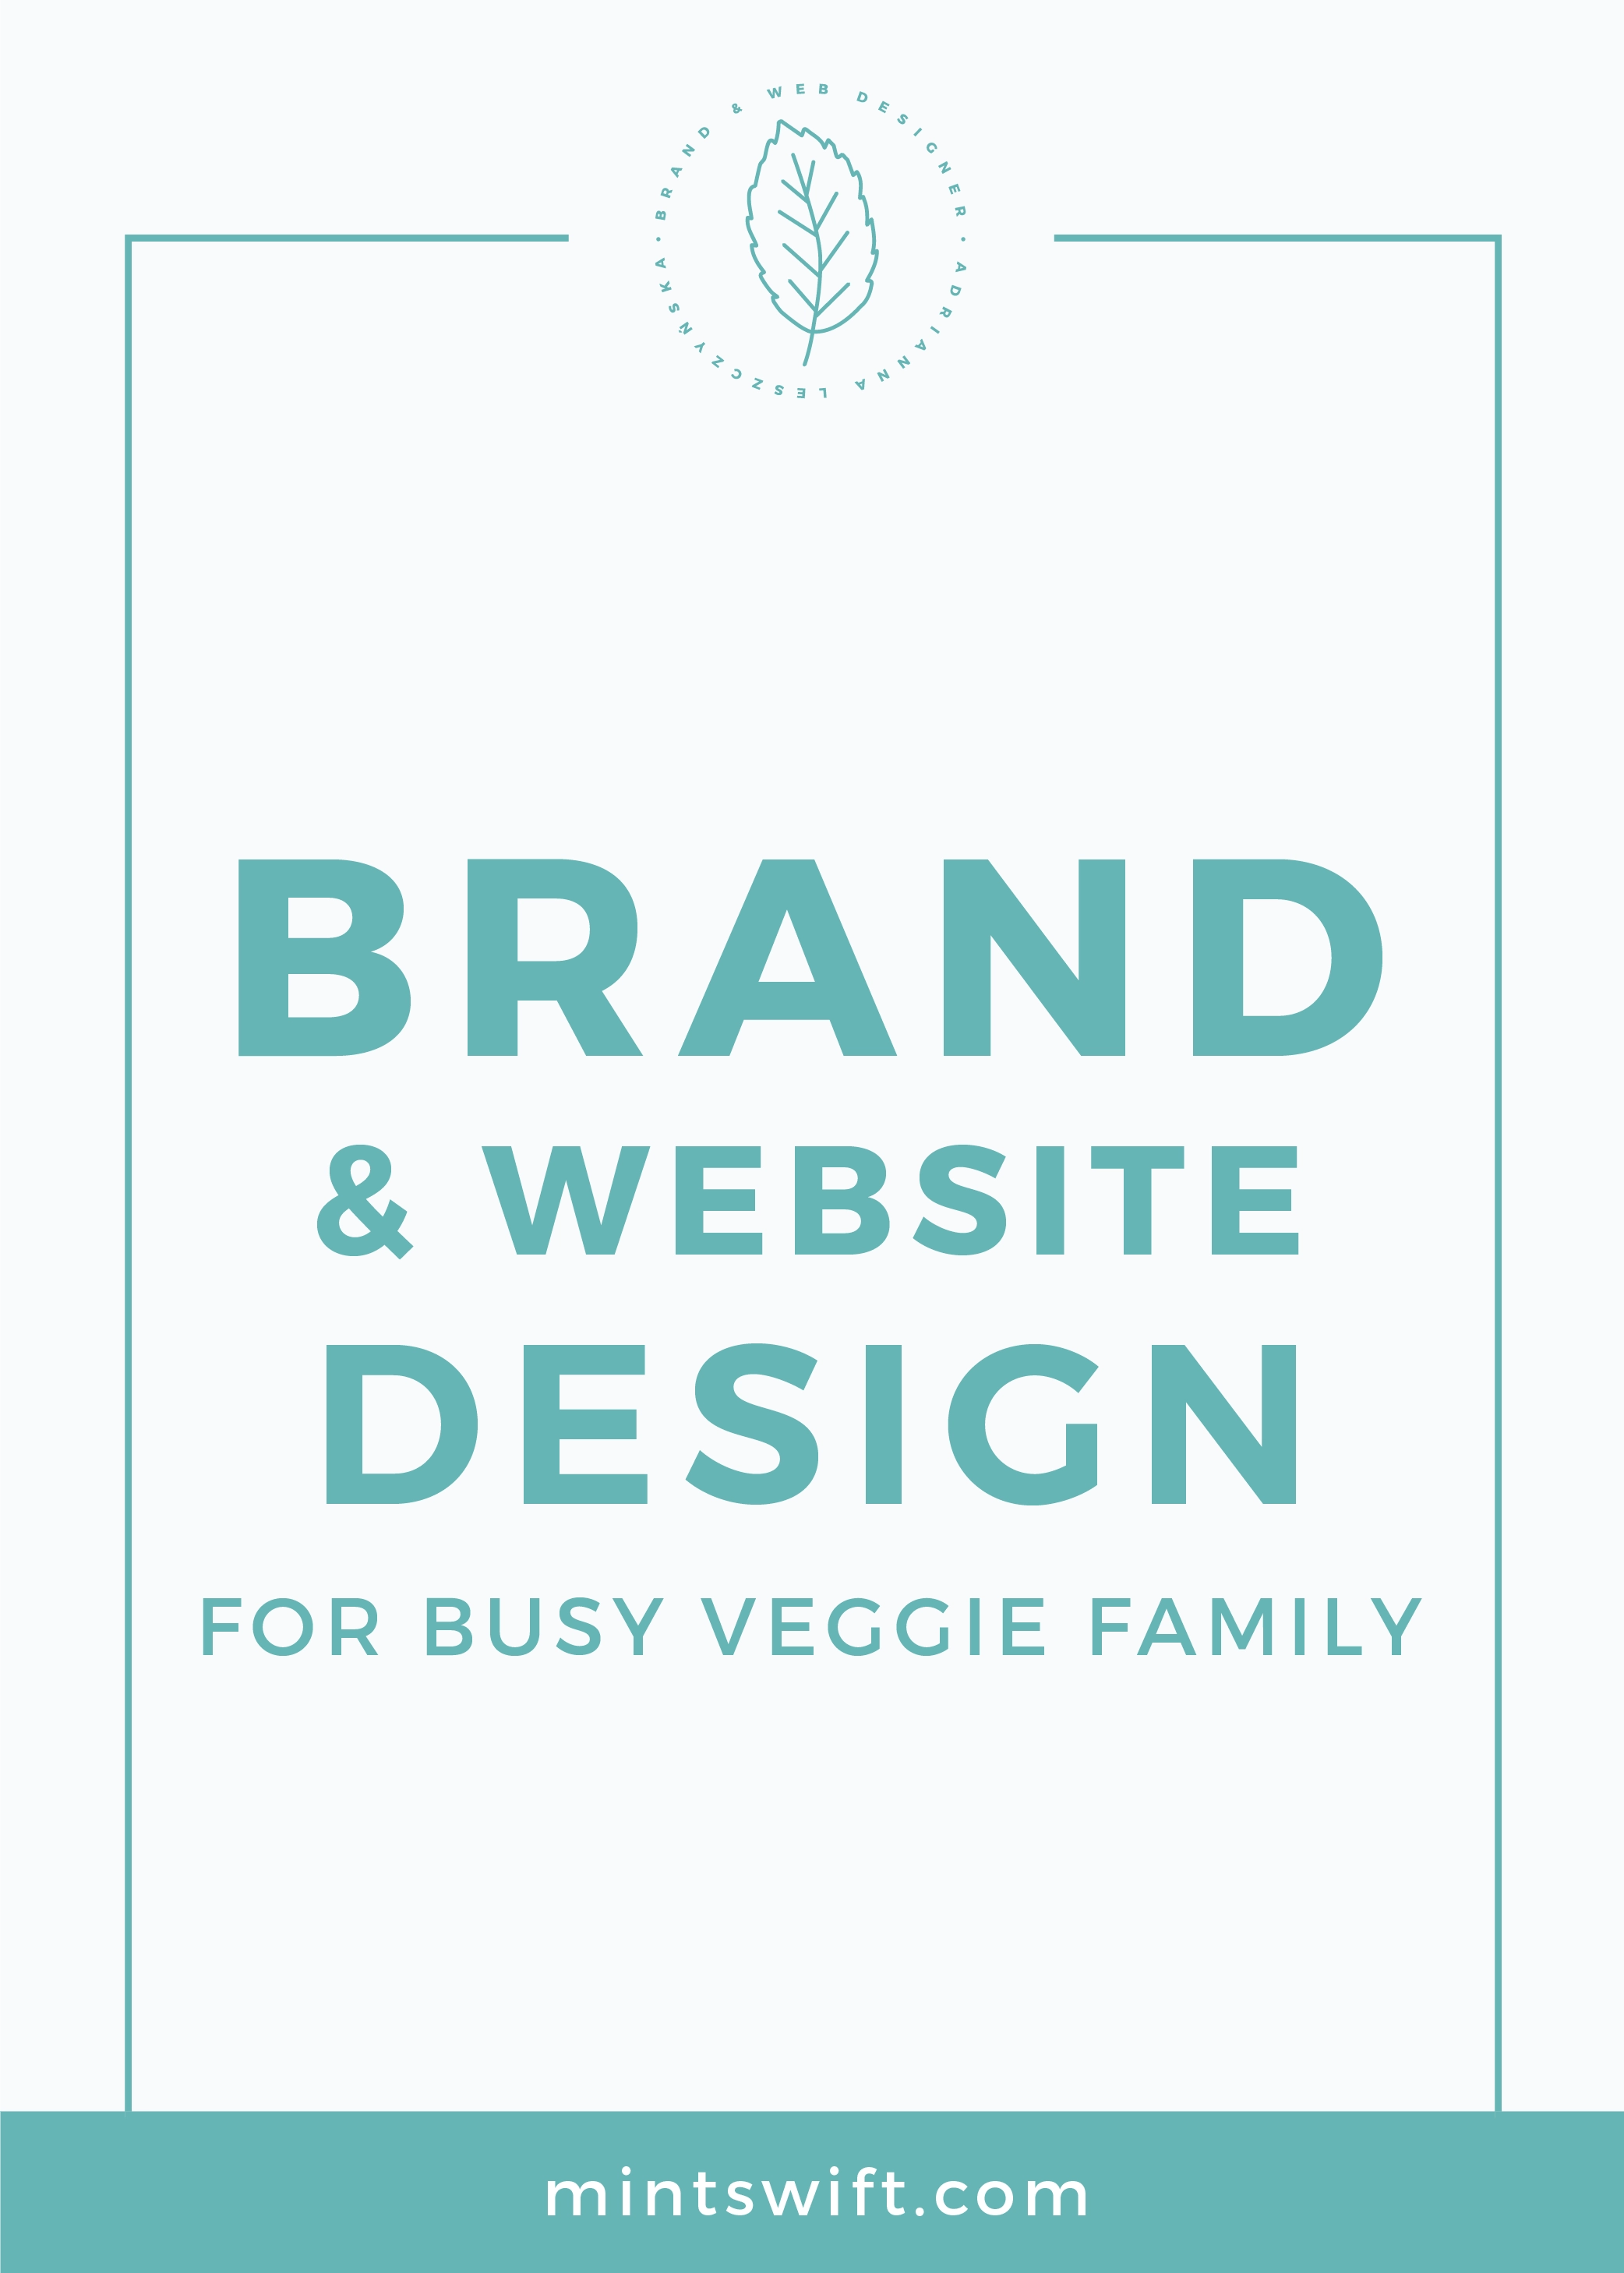 Brand & Website Design for Busy Veggie Family MintSwift